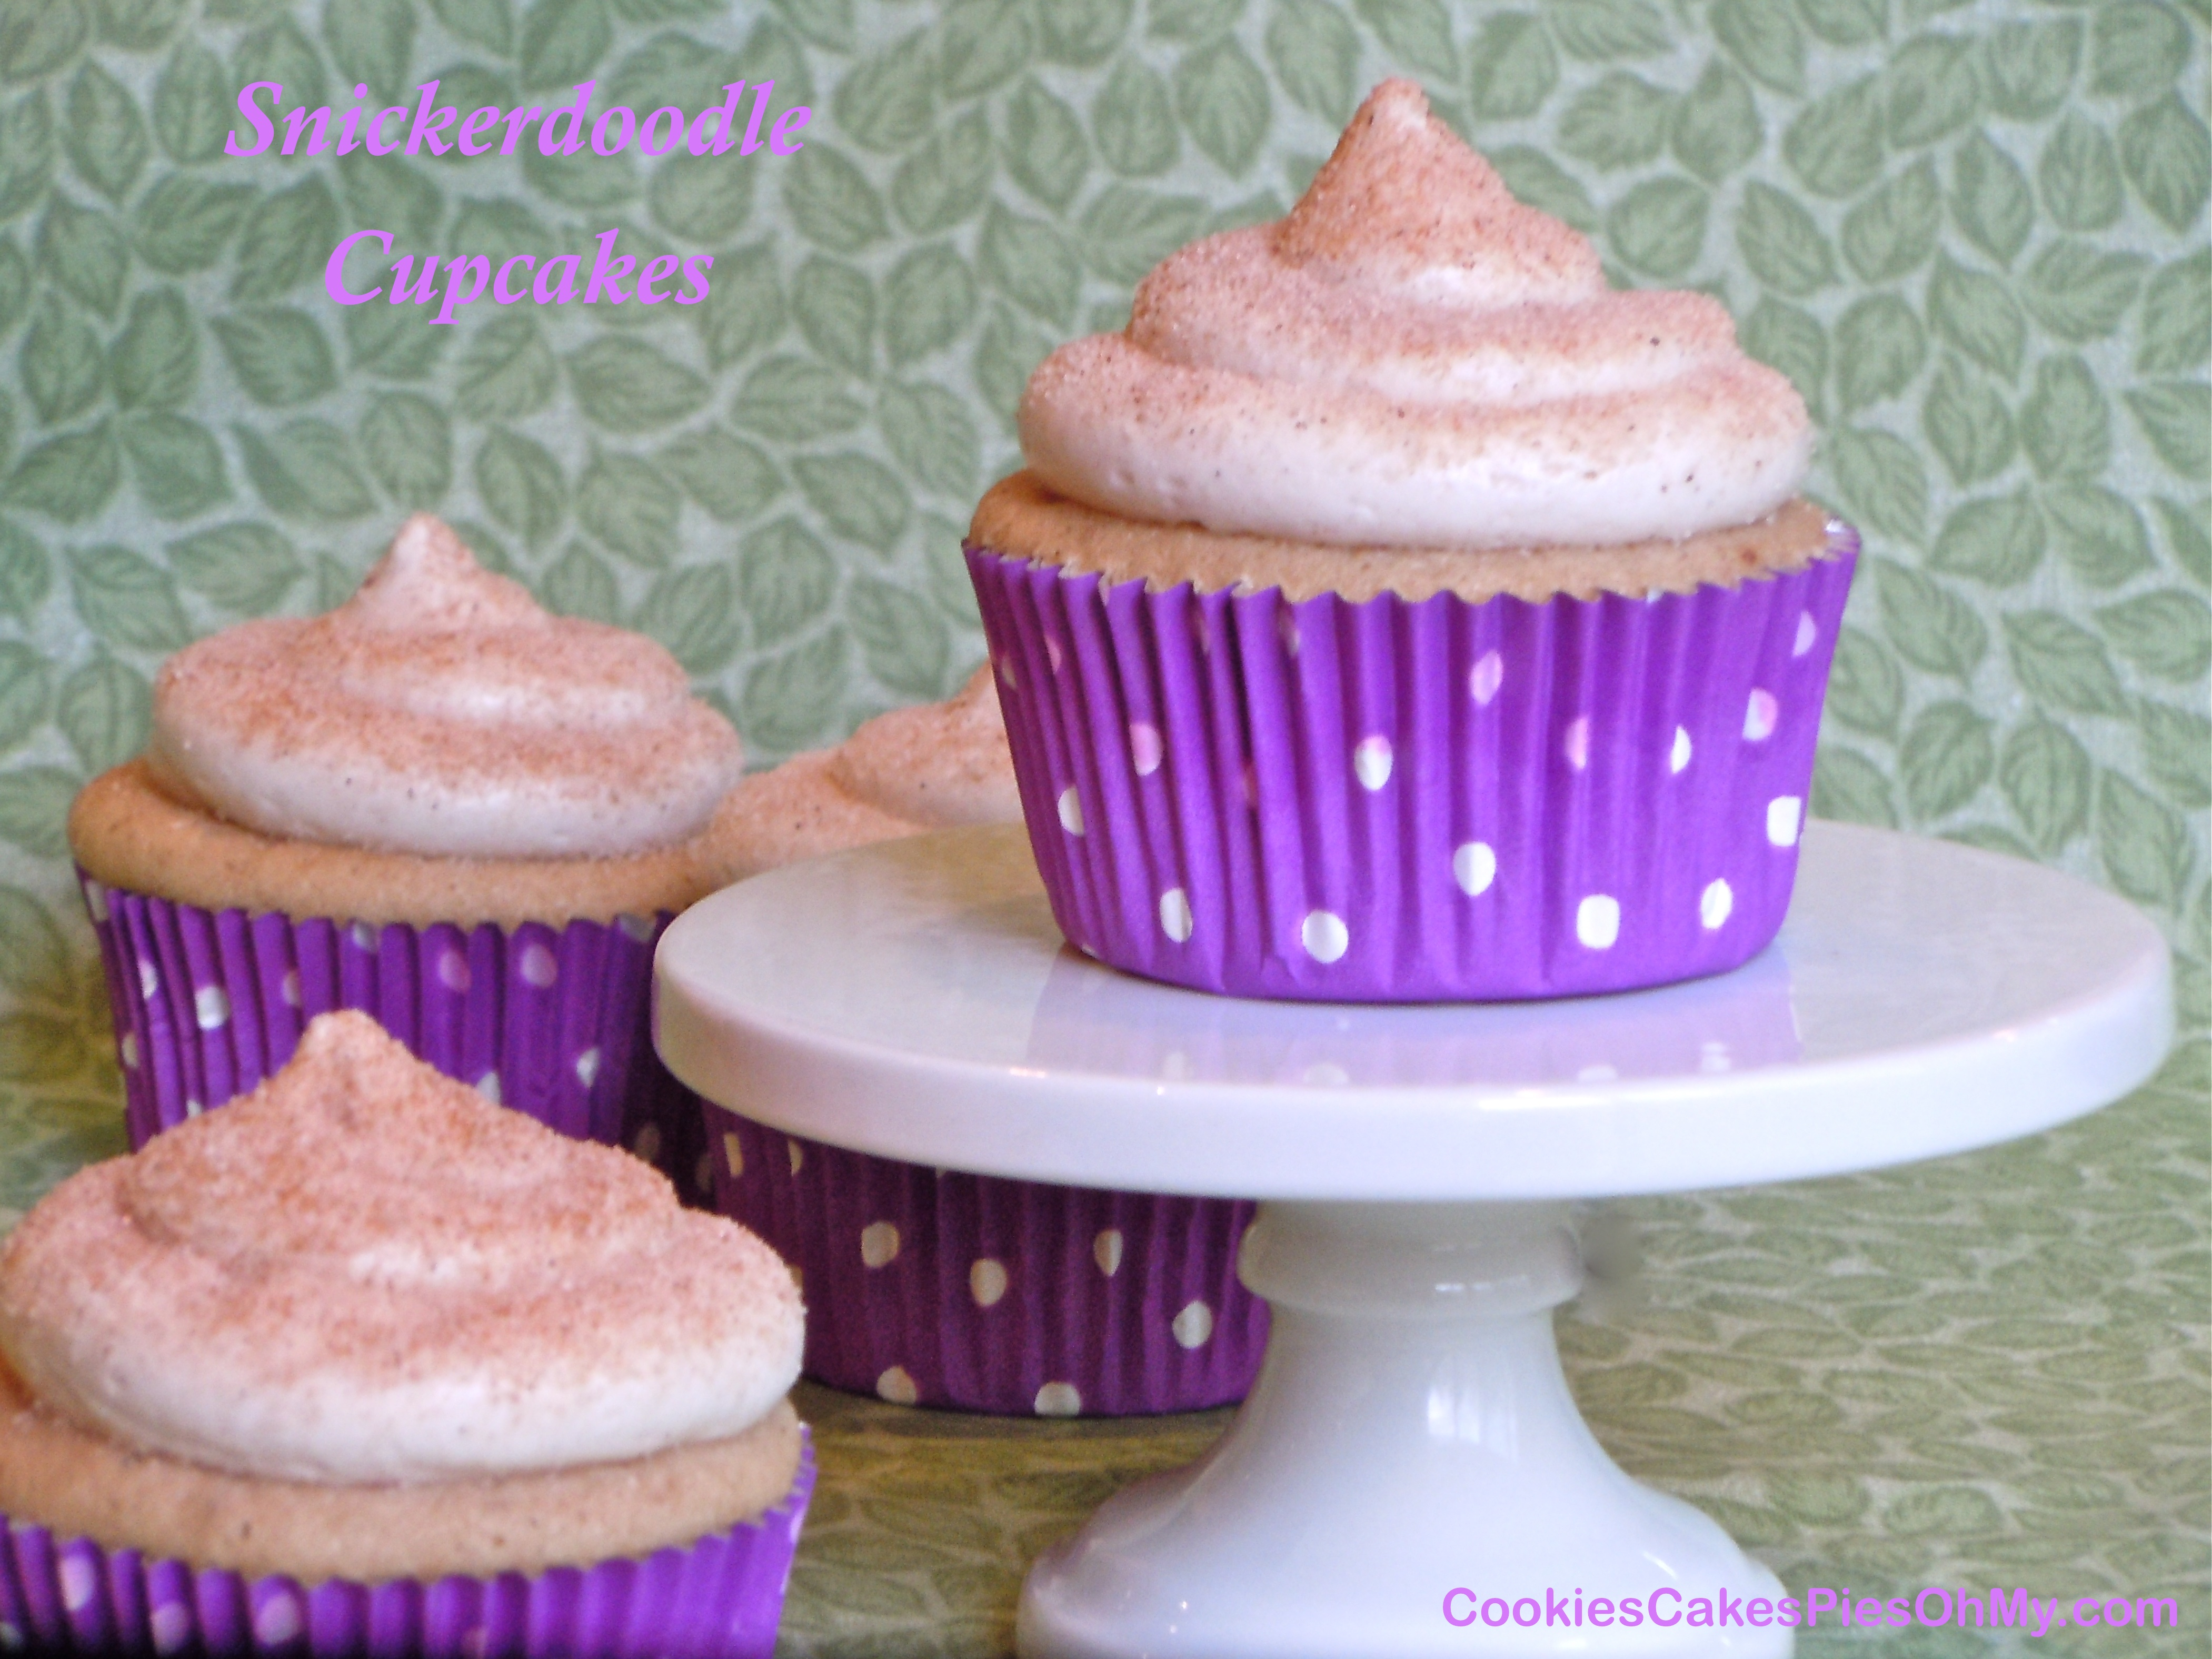 Snickerdoodle Cupcakes with Cinnamon Cream Cheese Frosting